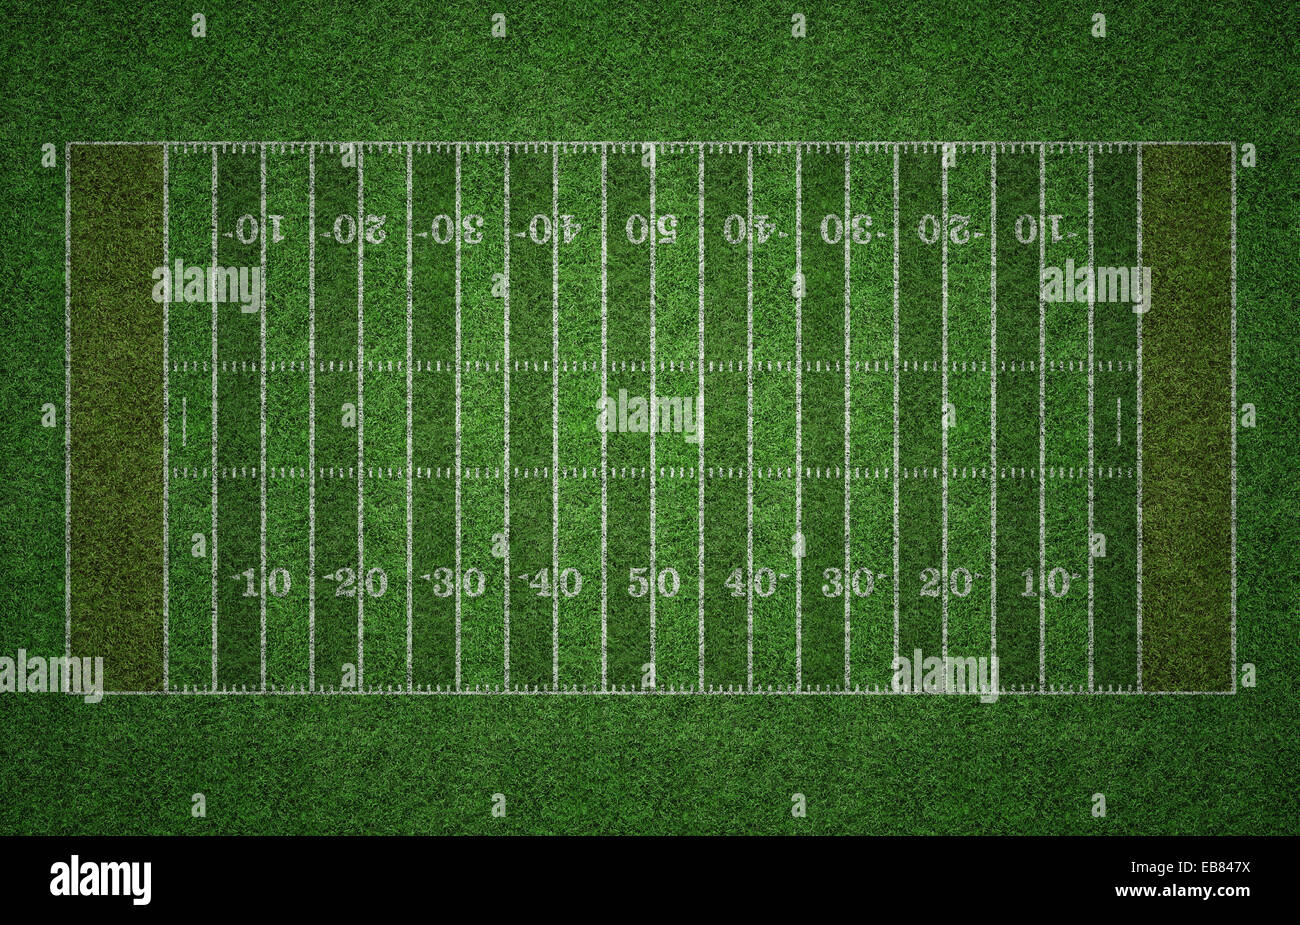 Green grass American football field with white lines marking the pitch. - Stock Image